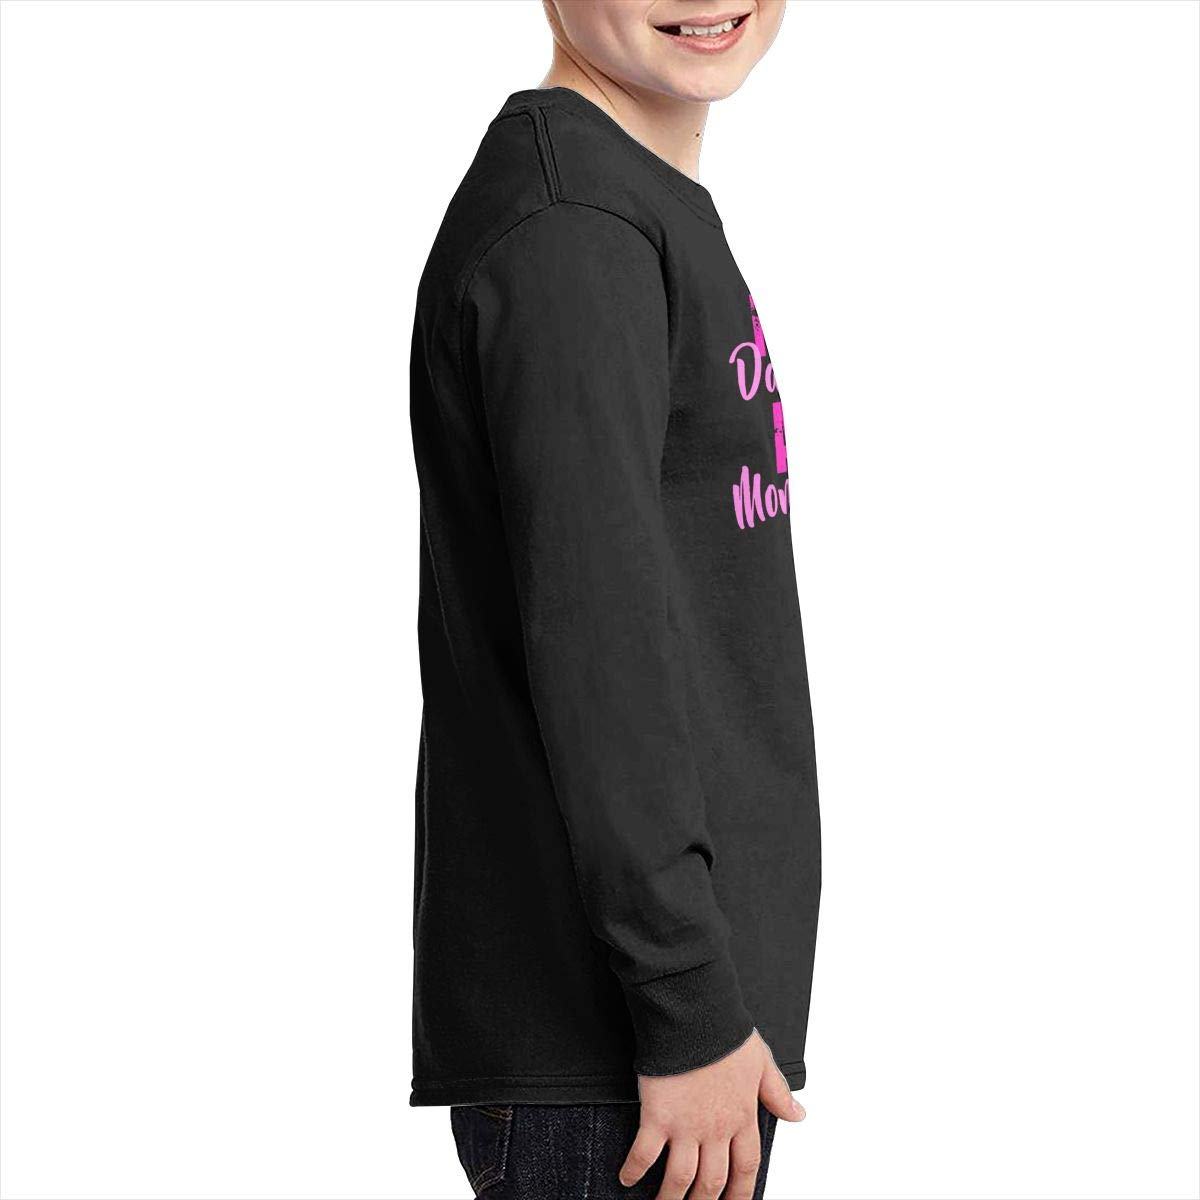 Daddys Girl Mommys World Boys Girls Casual Long Sleeve T Shirts Moisture Wicking Athletic Tee Graphic Tops